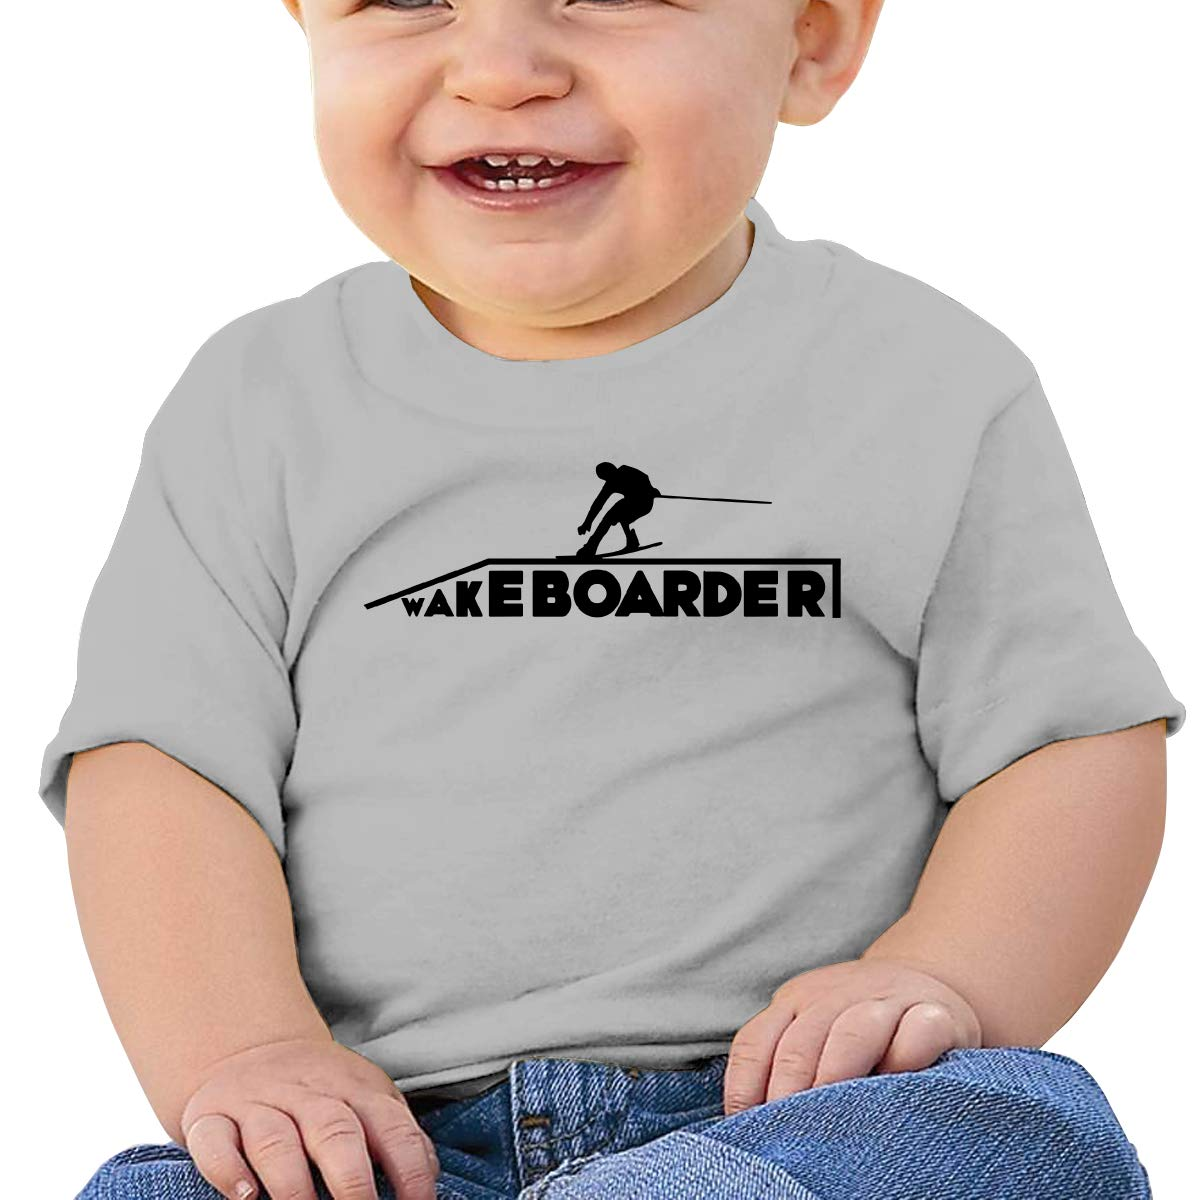 JVNSS Wakeboarder//Kiteboard Baby T-Shirt Baby Boy Girl Cotton T Shirts Funny Outfits for 6M-2T Baby